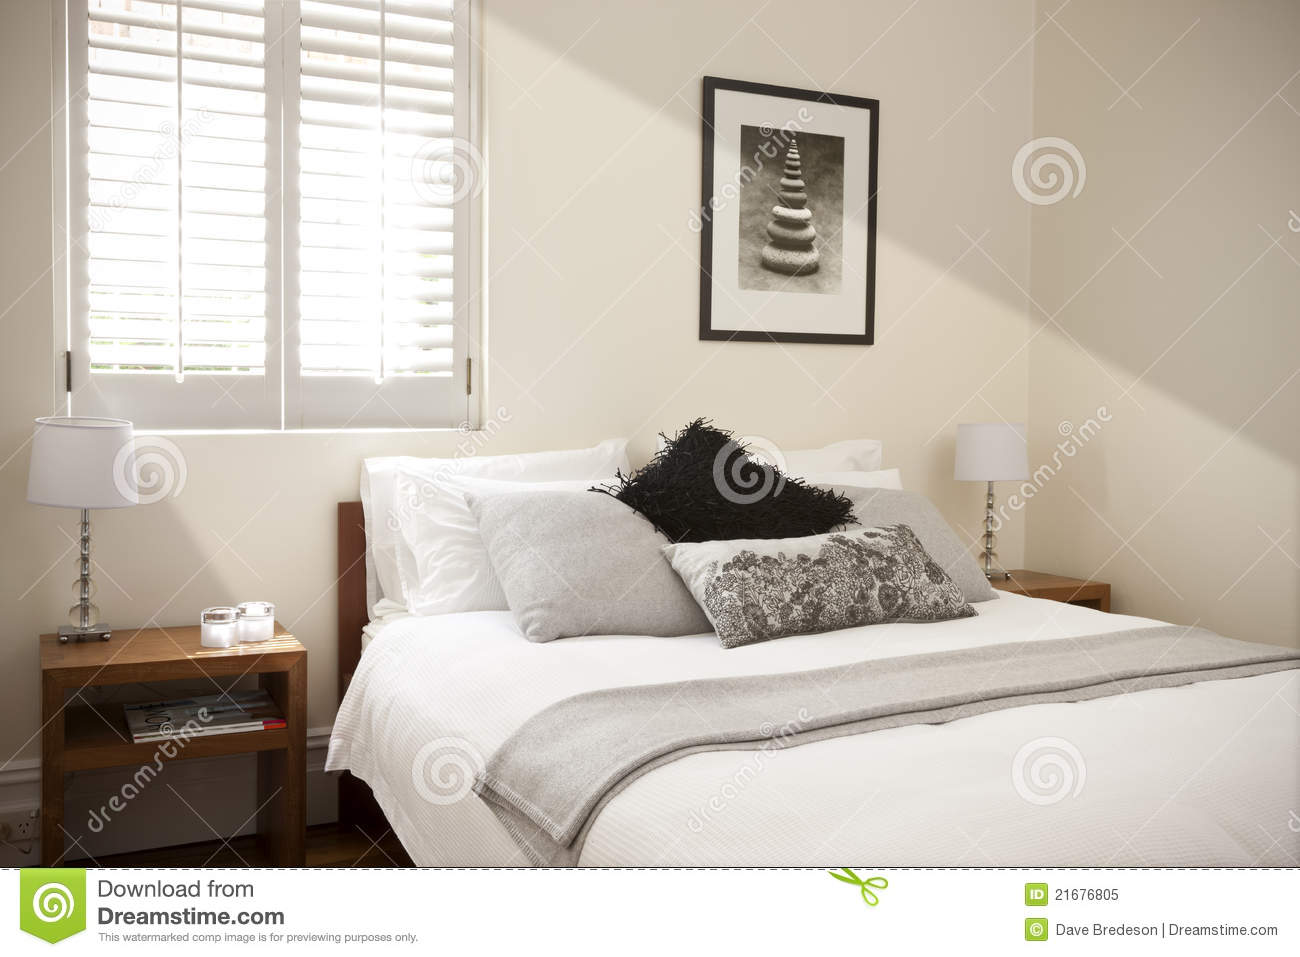 Bedroom Bed Interior Light. Bedroom Bed Interior Light stock image  Image of bright   21676805